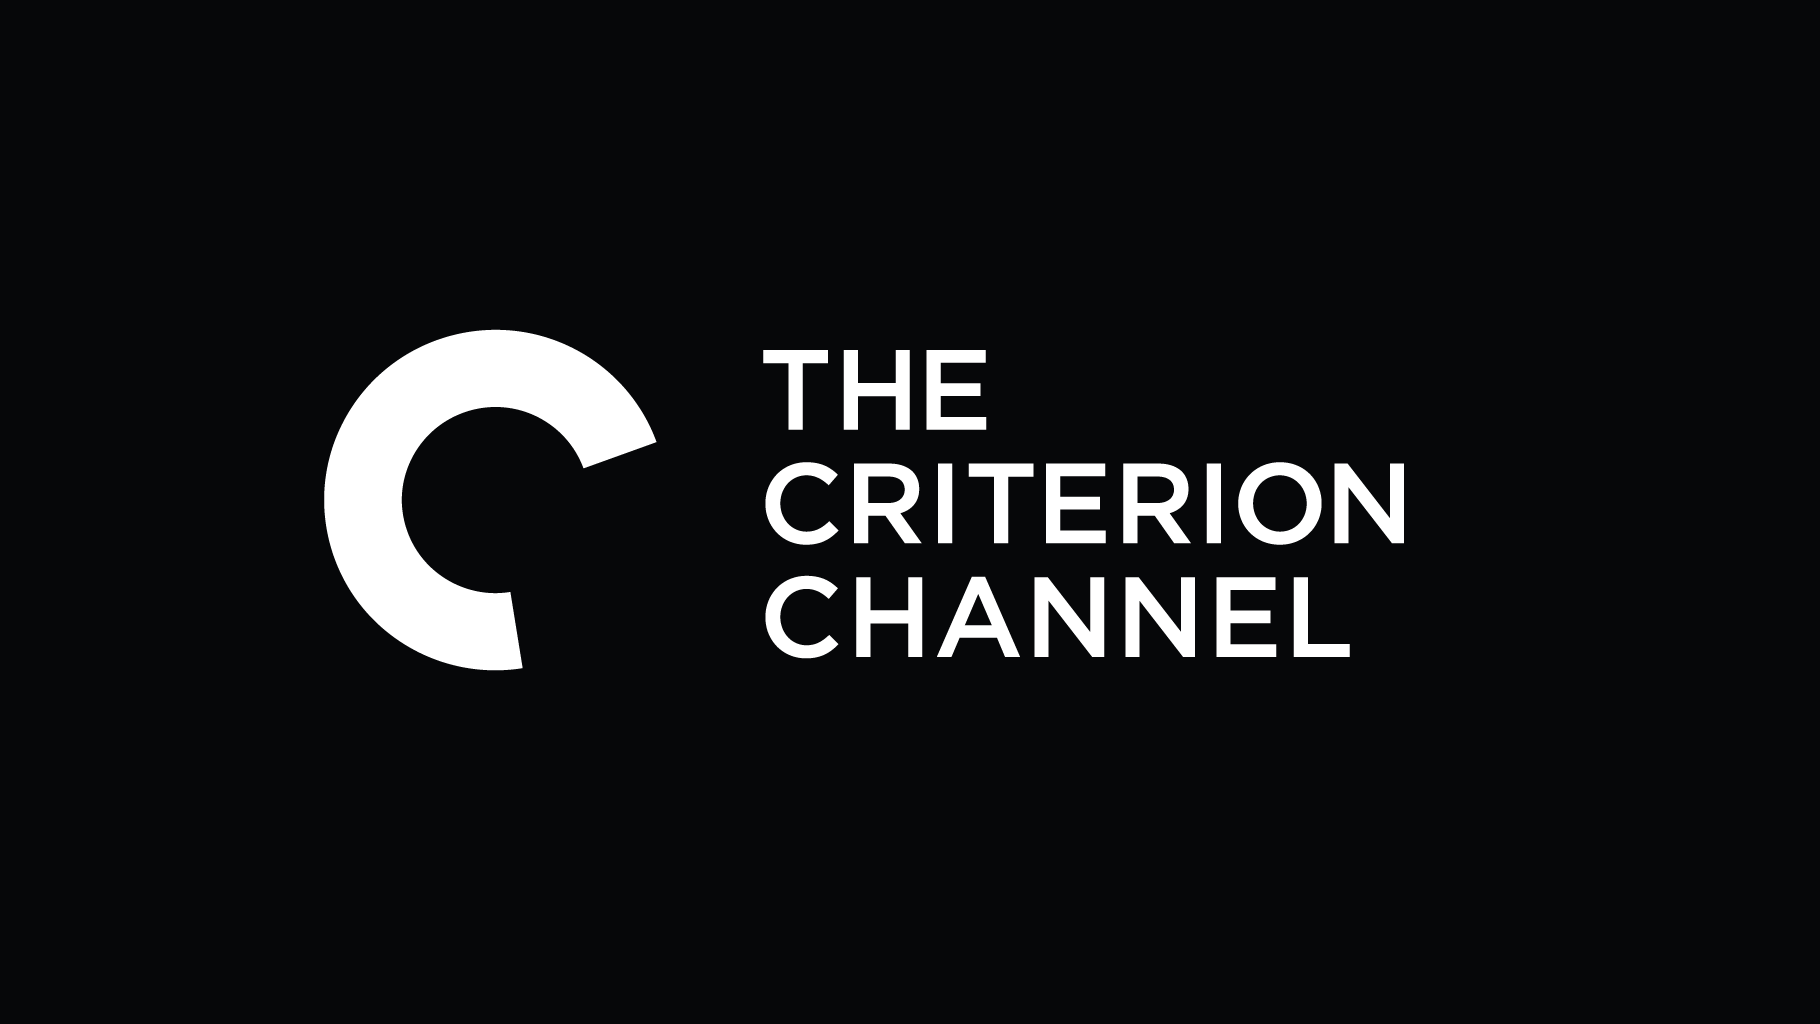 Criterion channel logo